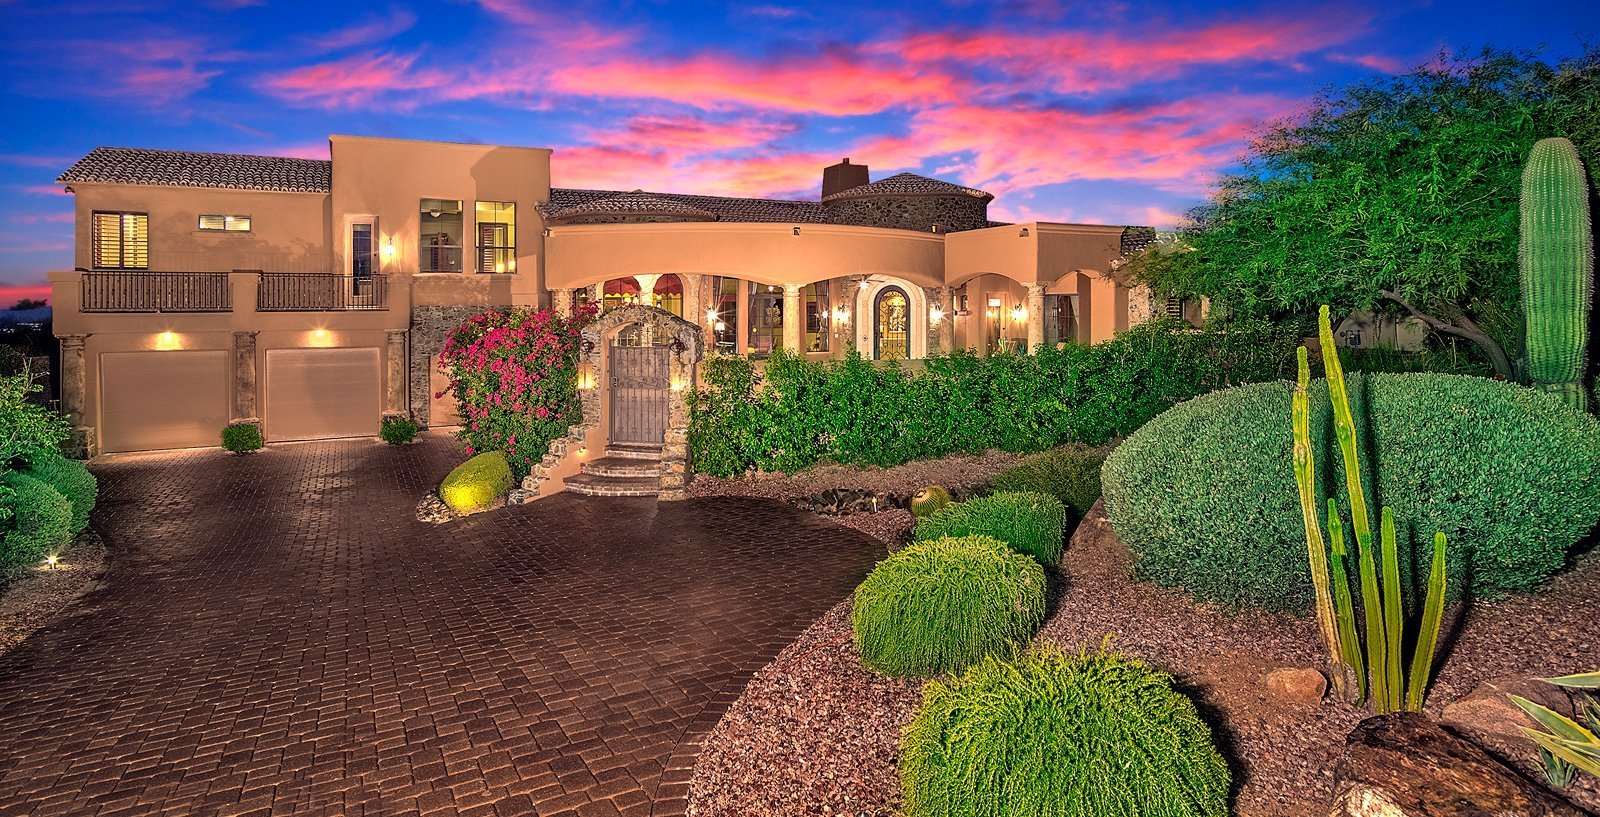 Waterfront Homes for Sale in Phoenix Az